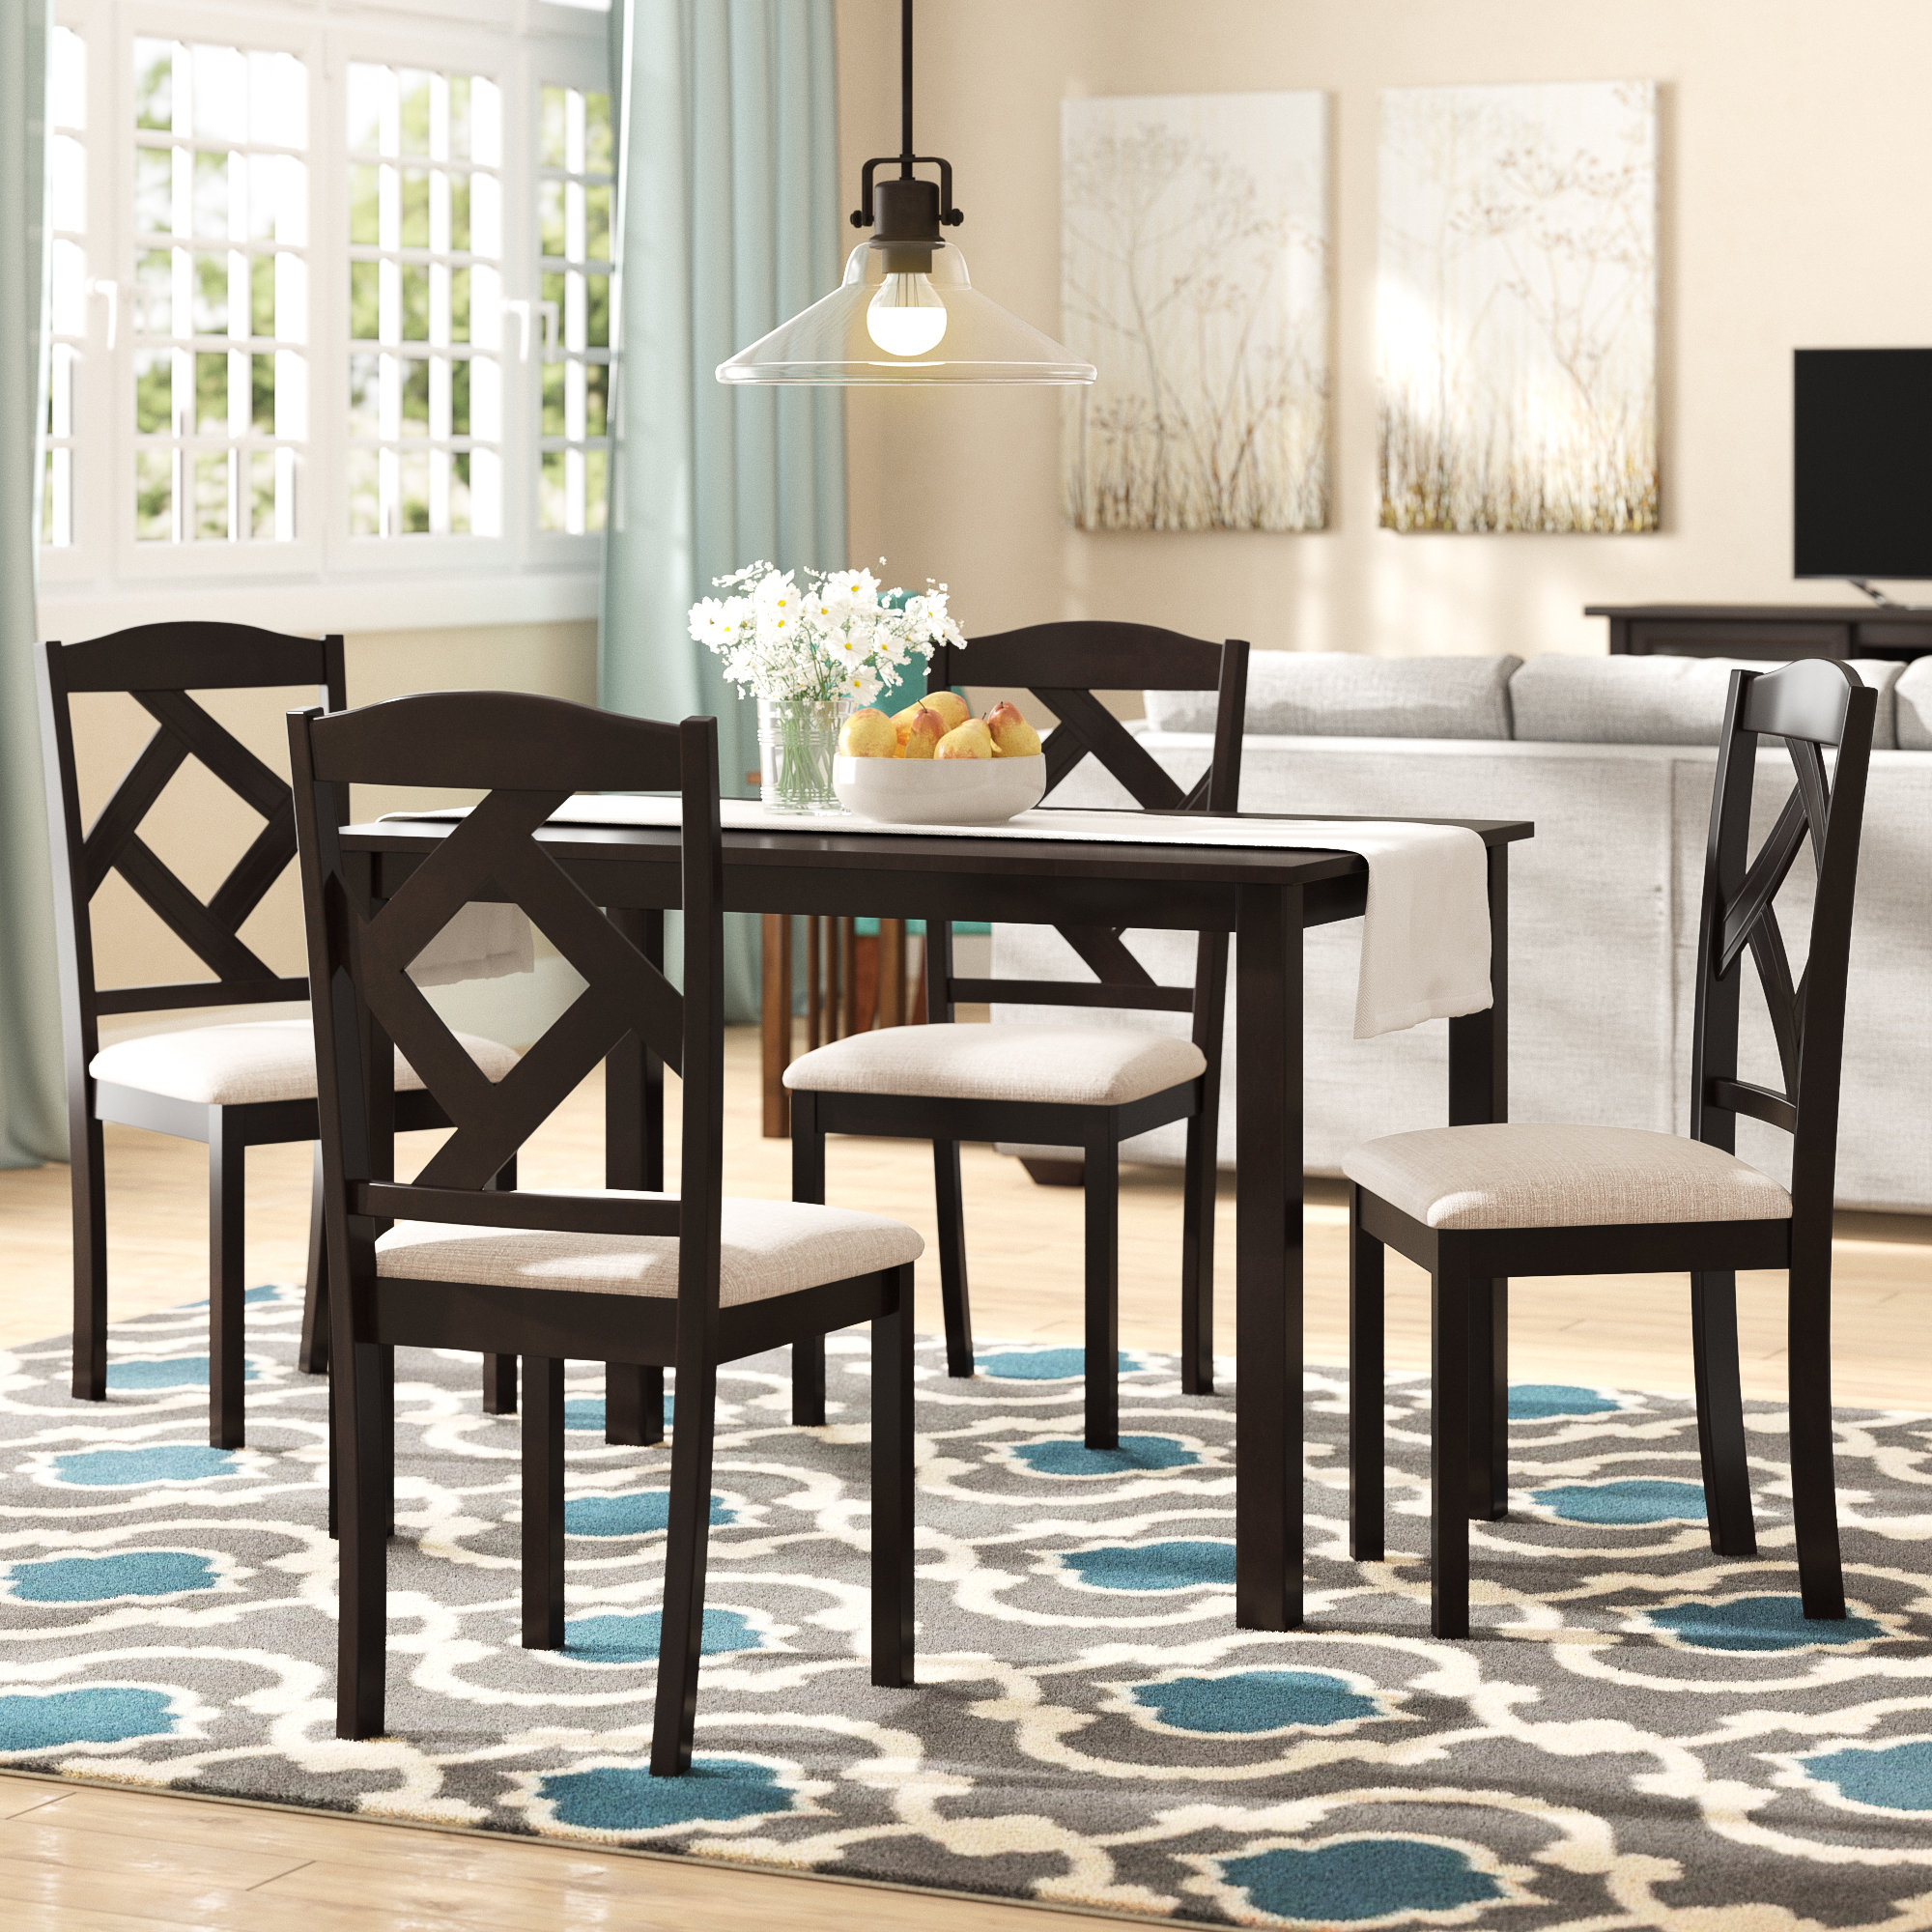 Popular Photo of 5 Piece Breakfast Nook Dining Sets